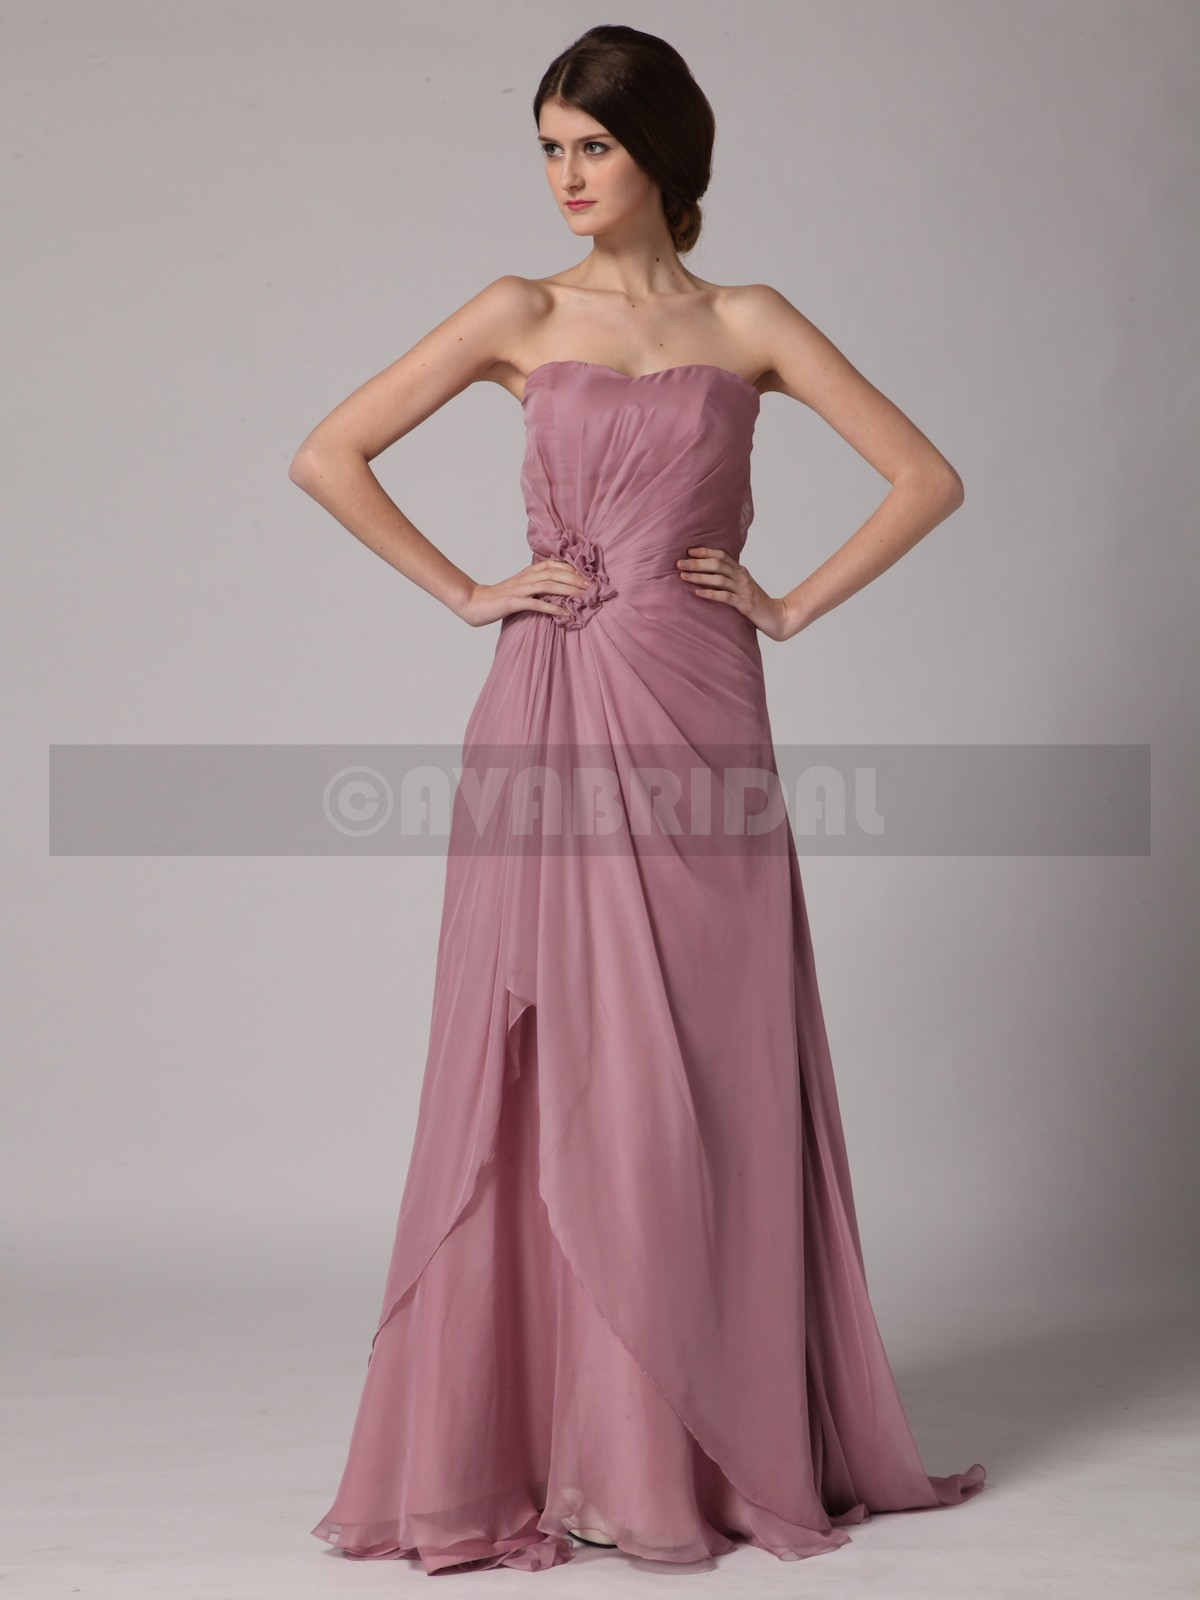 Slim Line Sweetheart Chiffon Bridesmaid Dress B439-Front